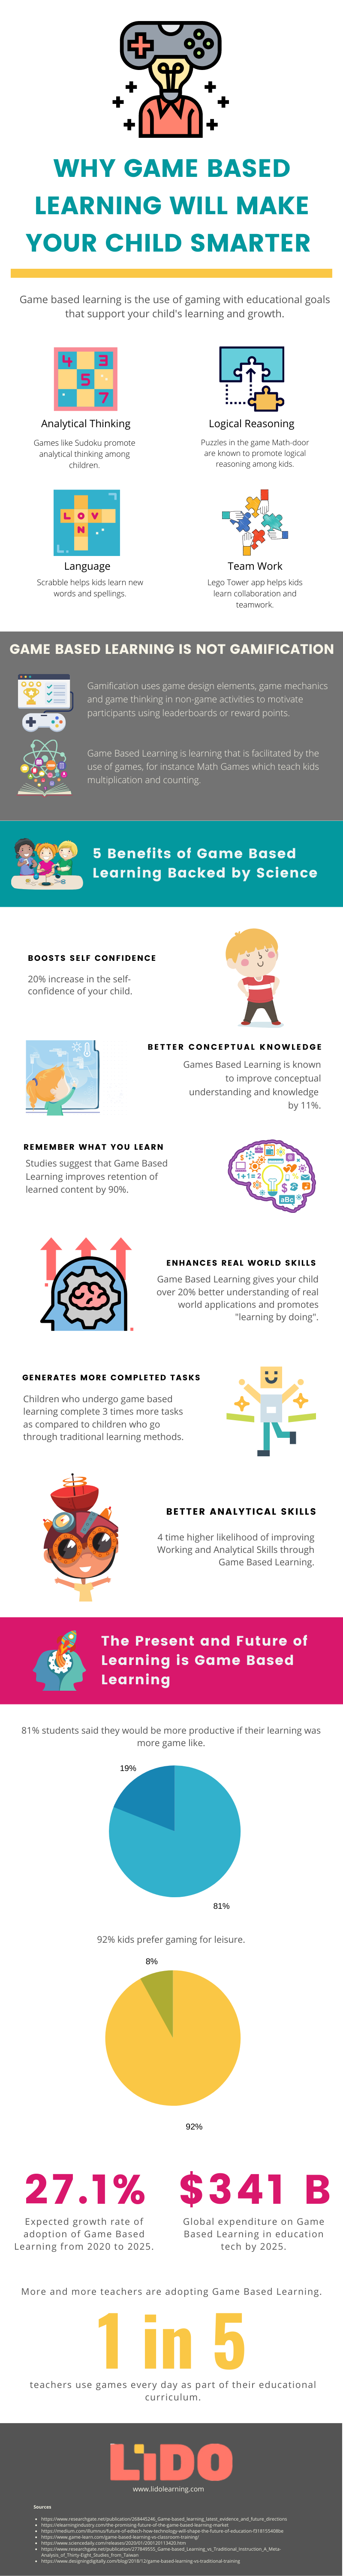 Why Game-Based Learning will make your child Smarter